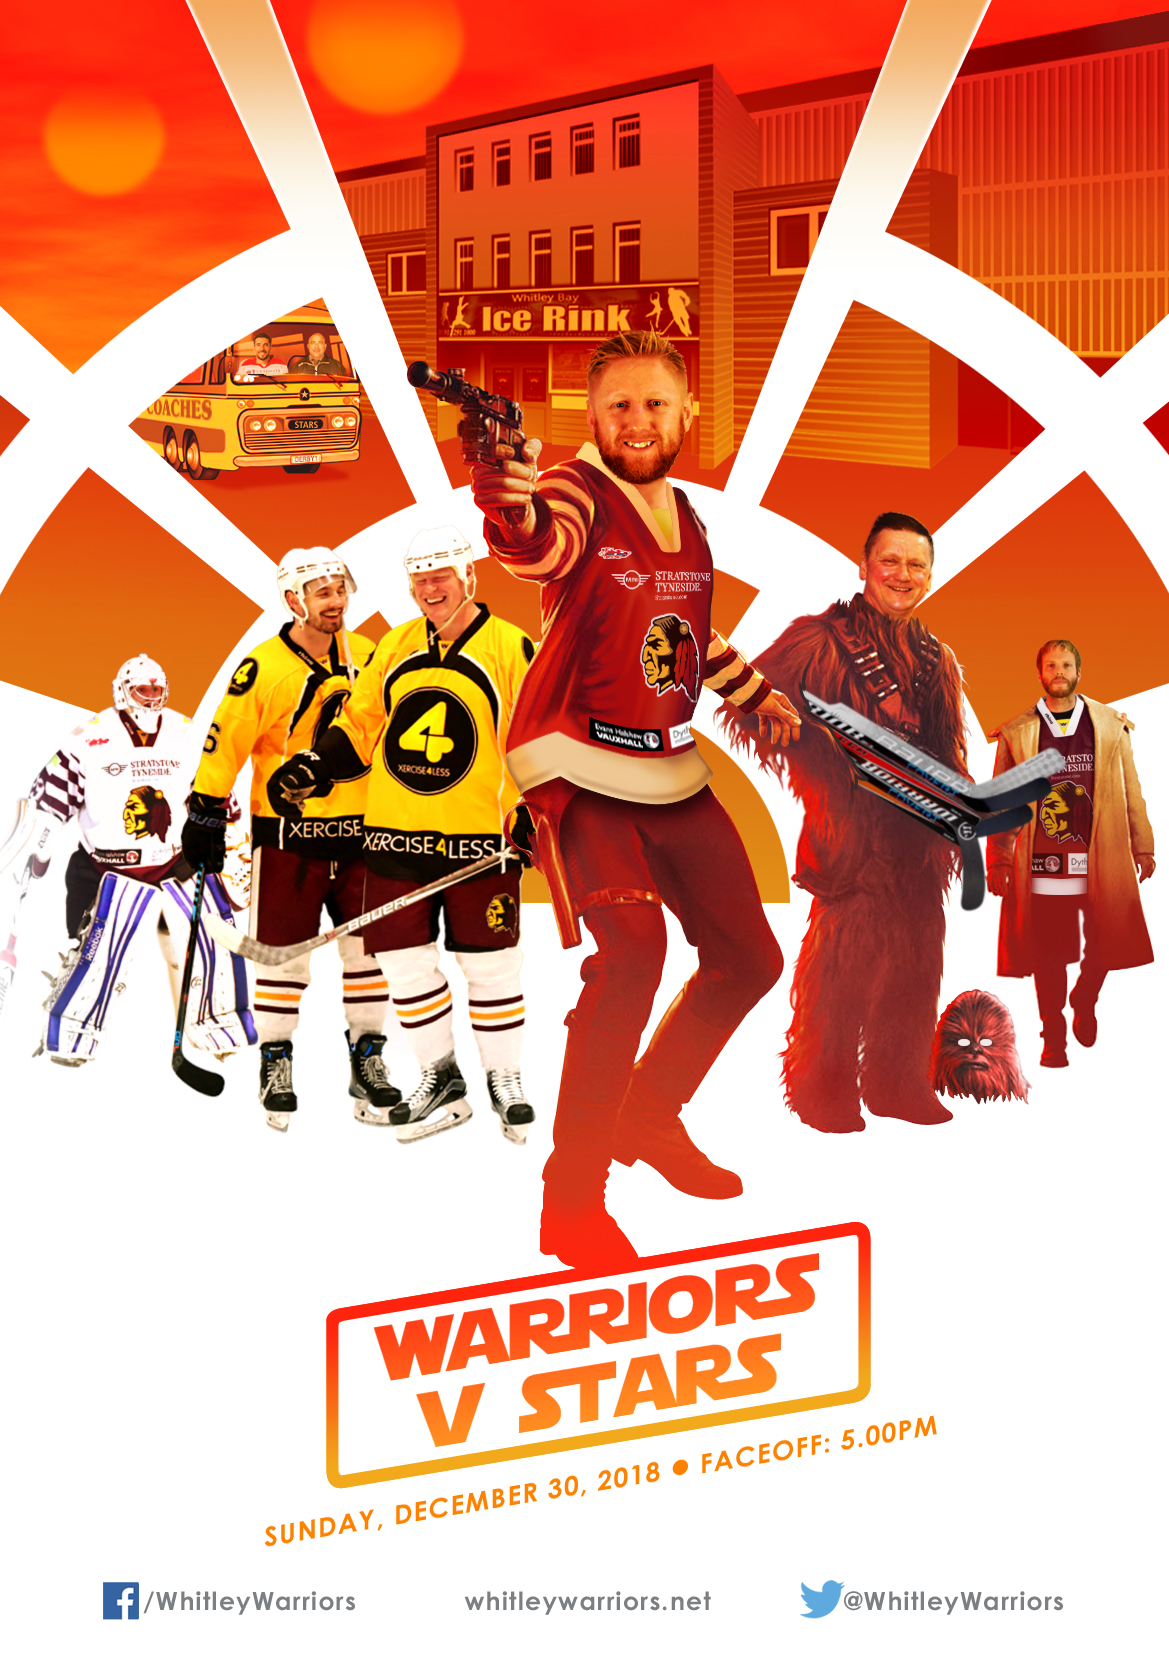 Whitley Warriors vs Billingham Stars @ Whitley Bay Ice Rink, Sunday 30 December, face off 5pm